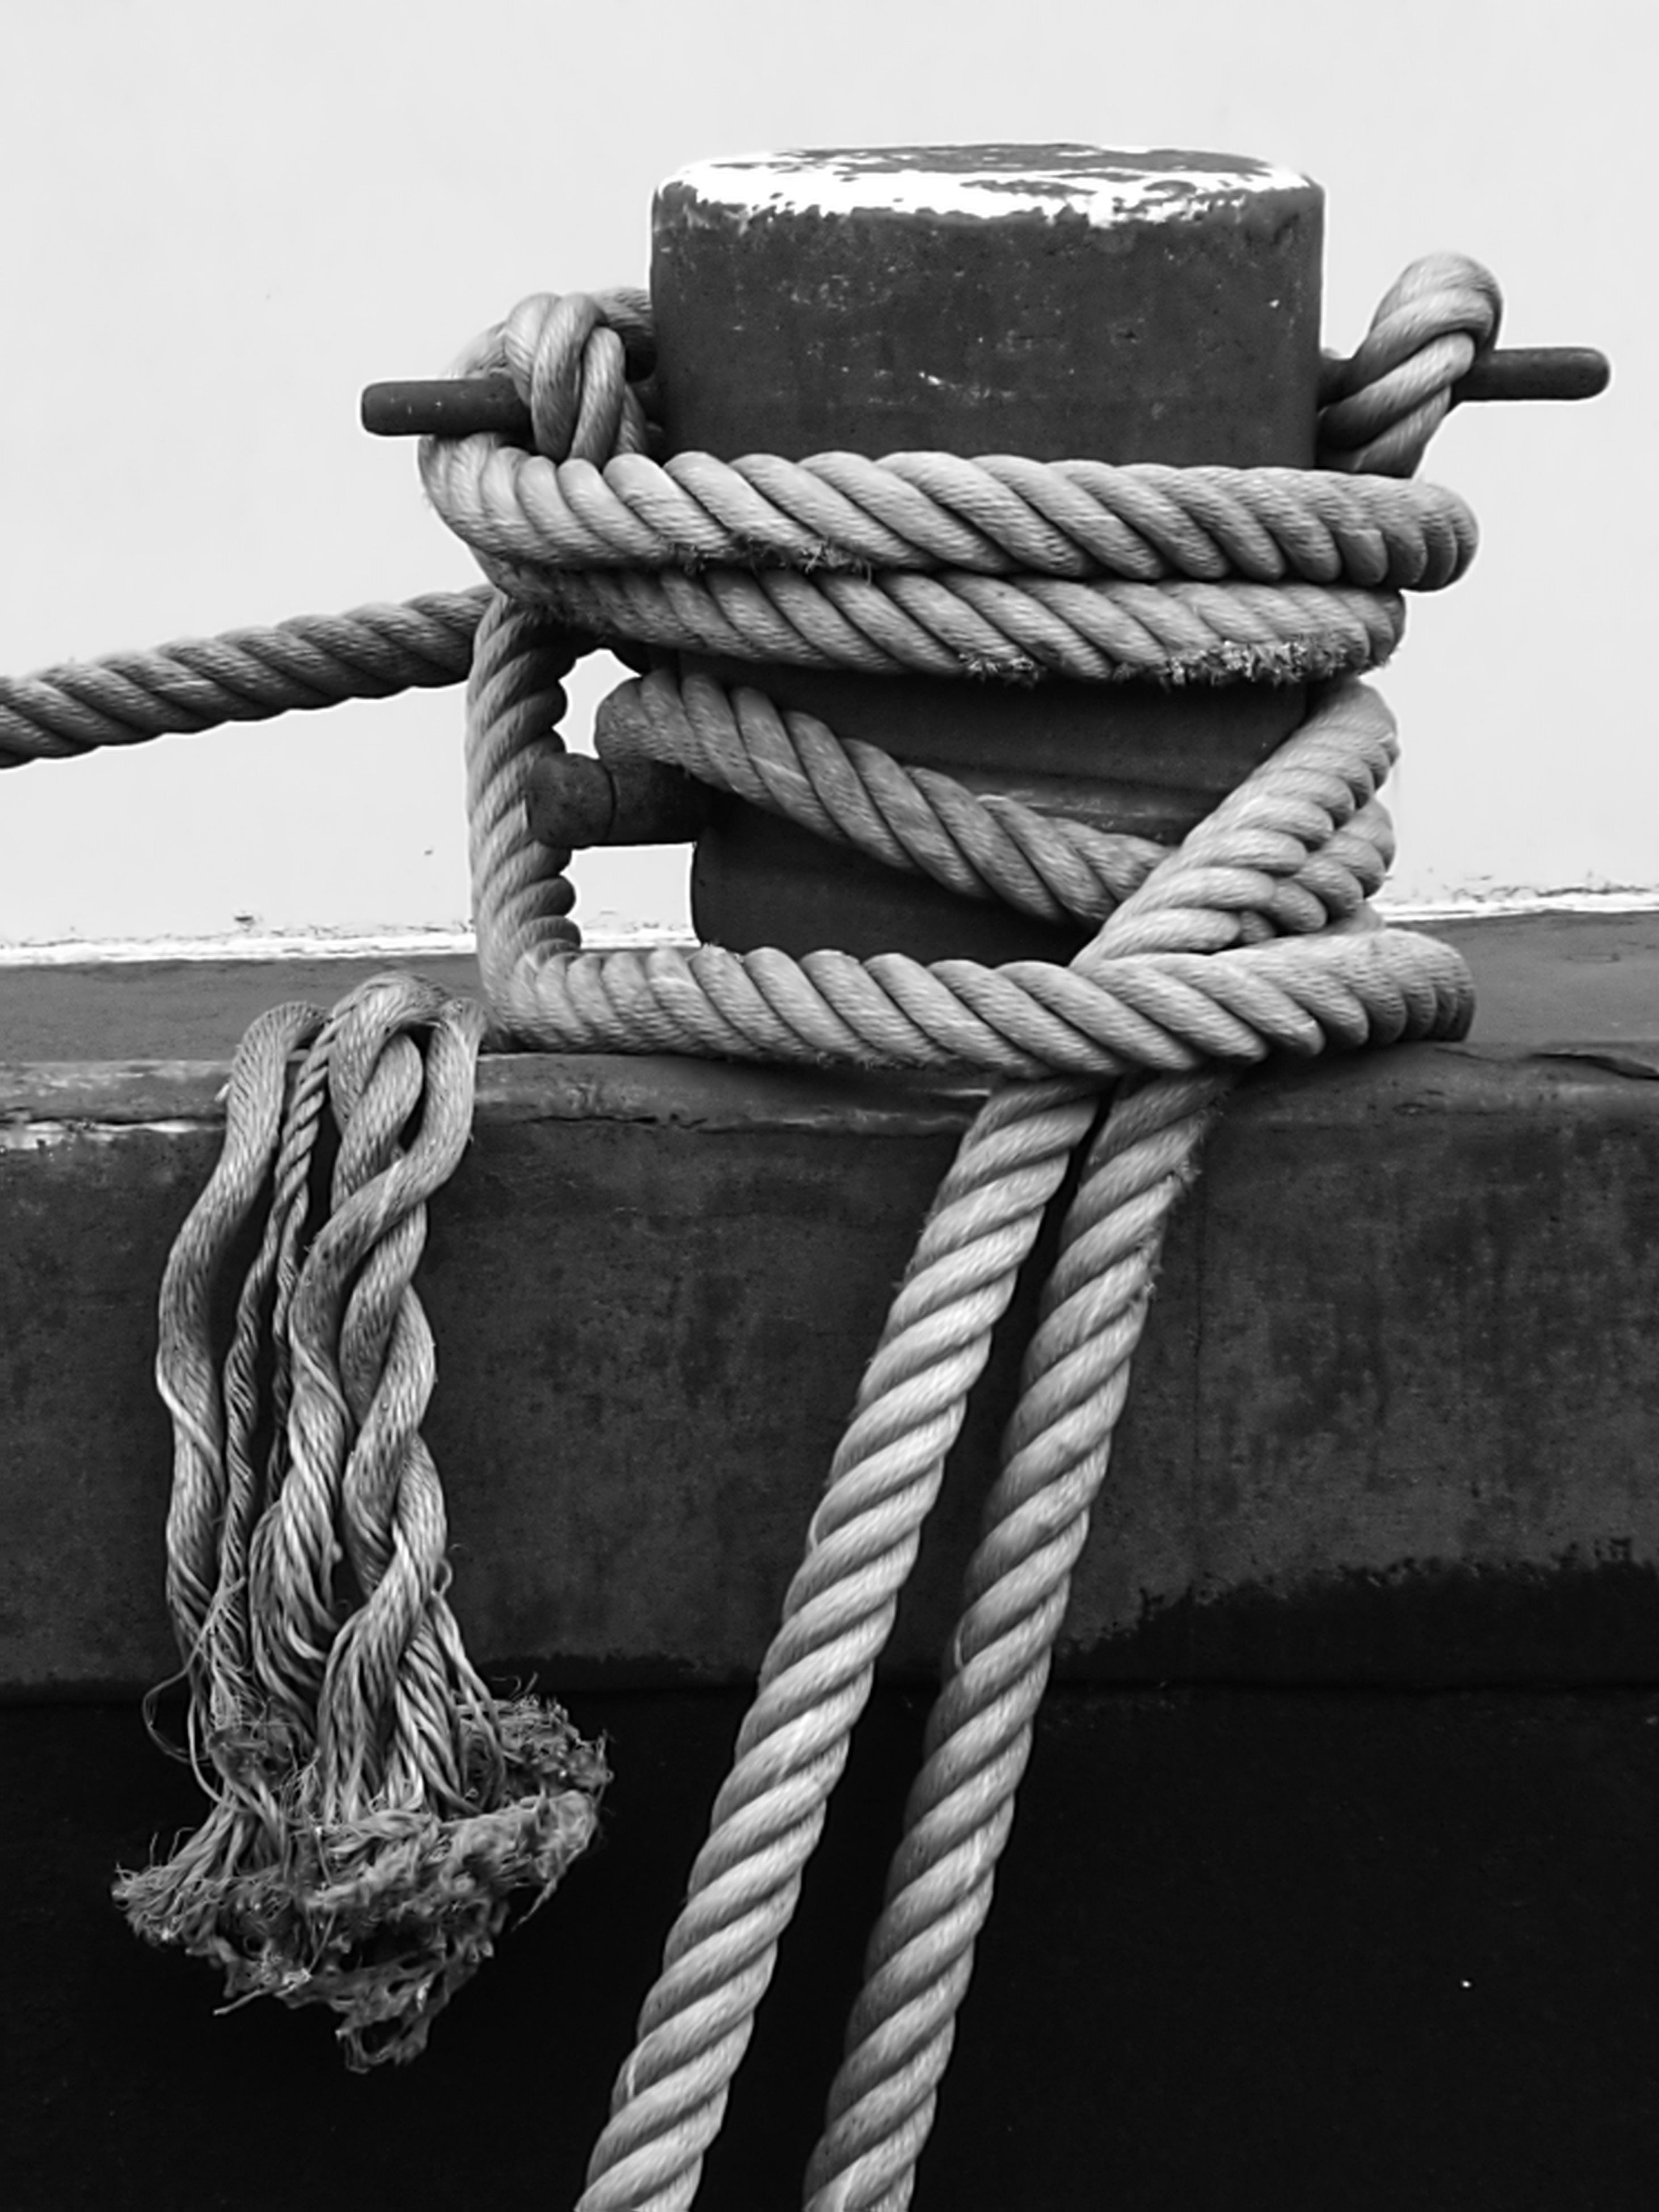 rope, strength, tied up, nautical vessel, tied knot, transportation, no people, close-up, cleat, connection, day, harbor, sea, outdoors, pulley, tied, nautical equipment, boat deck